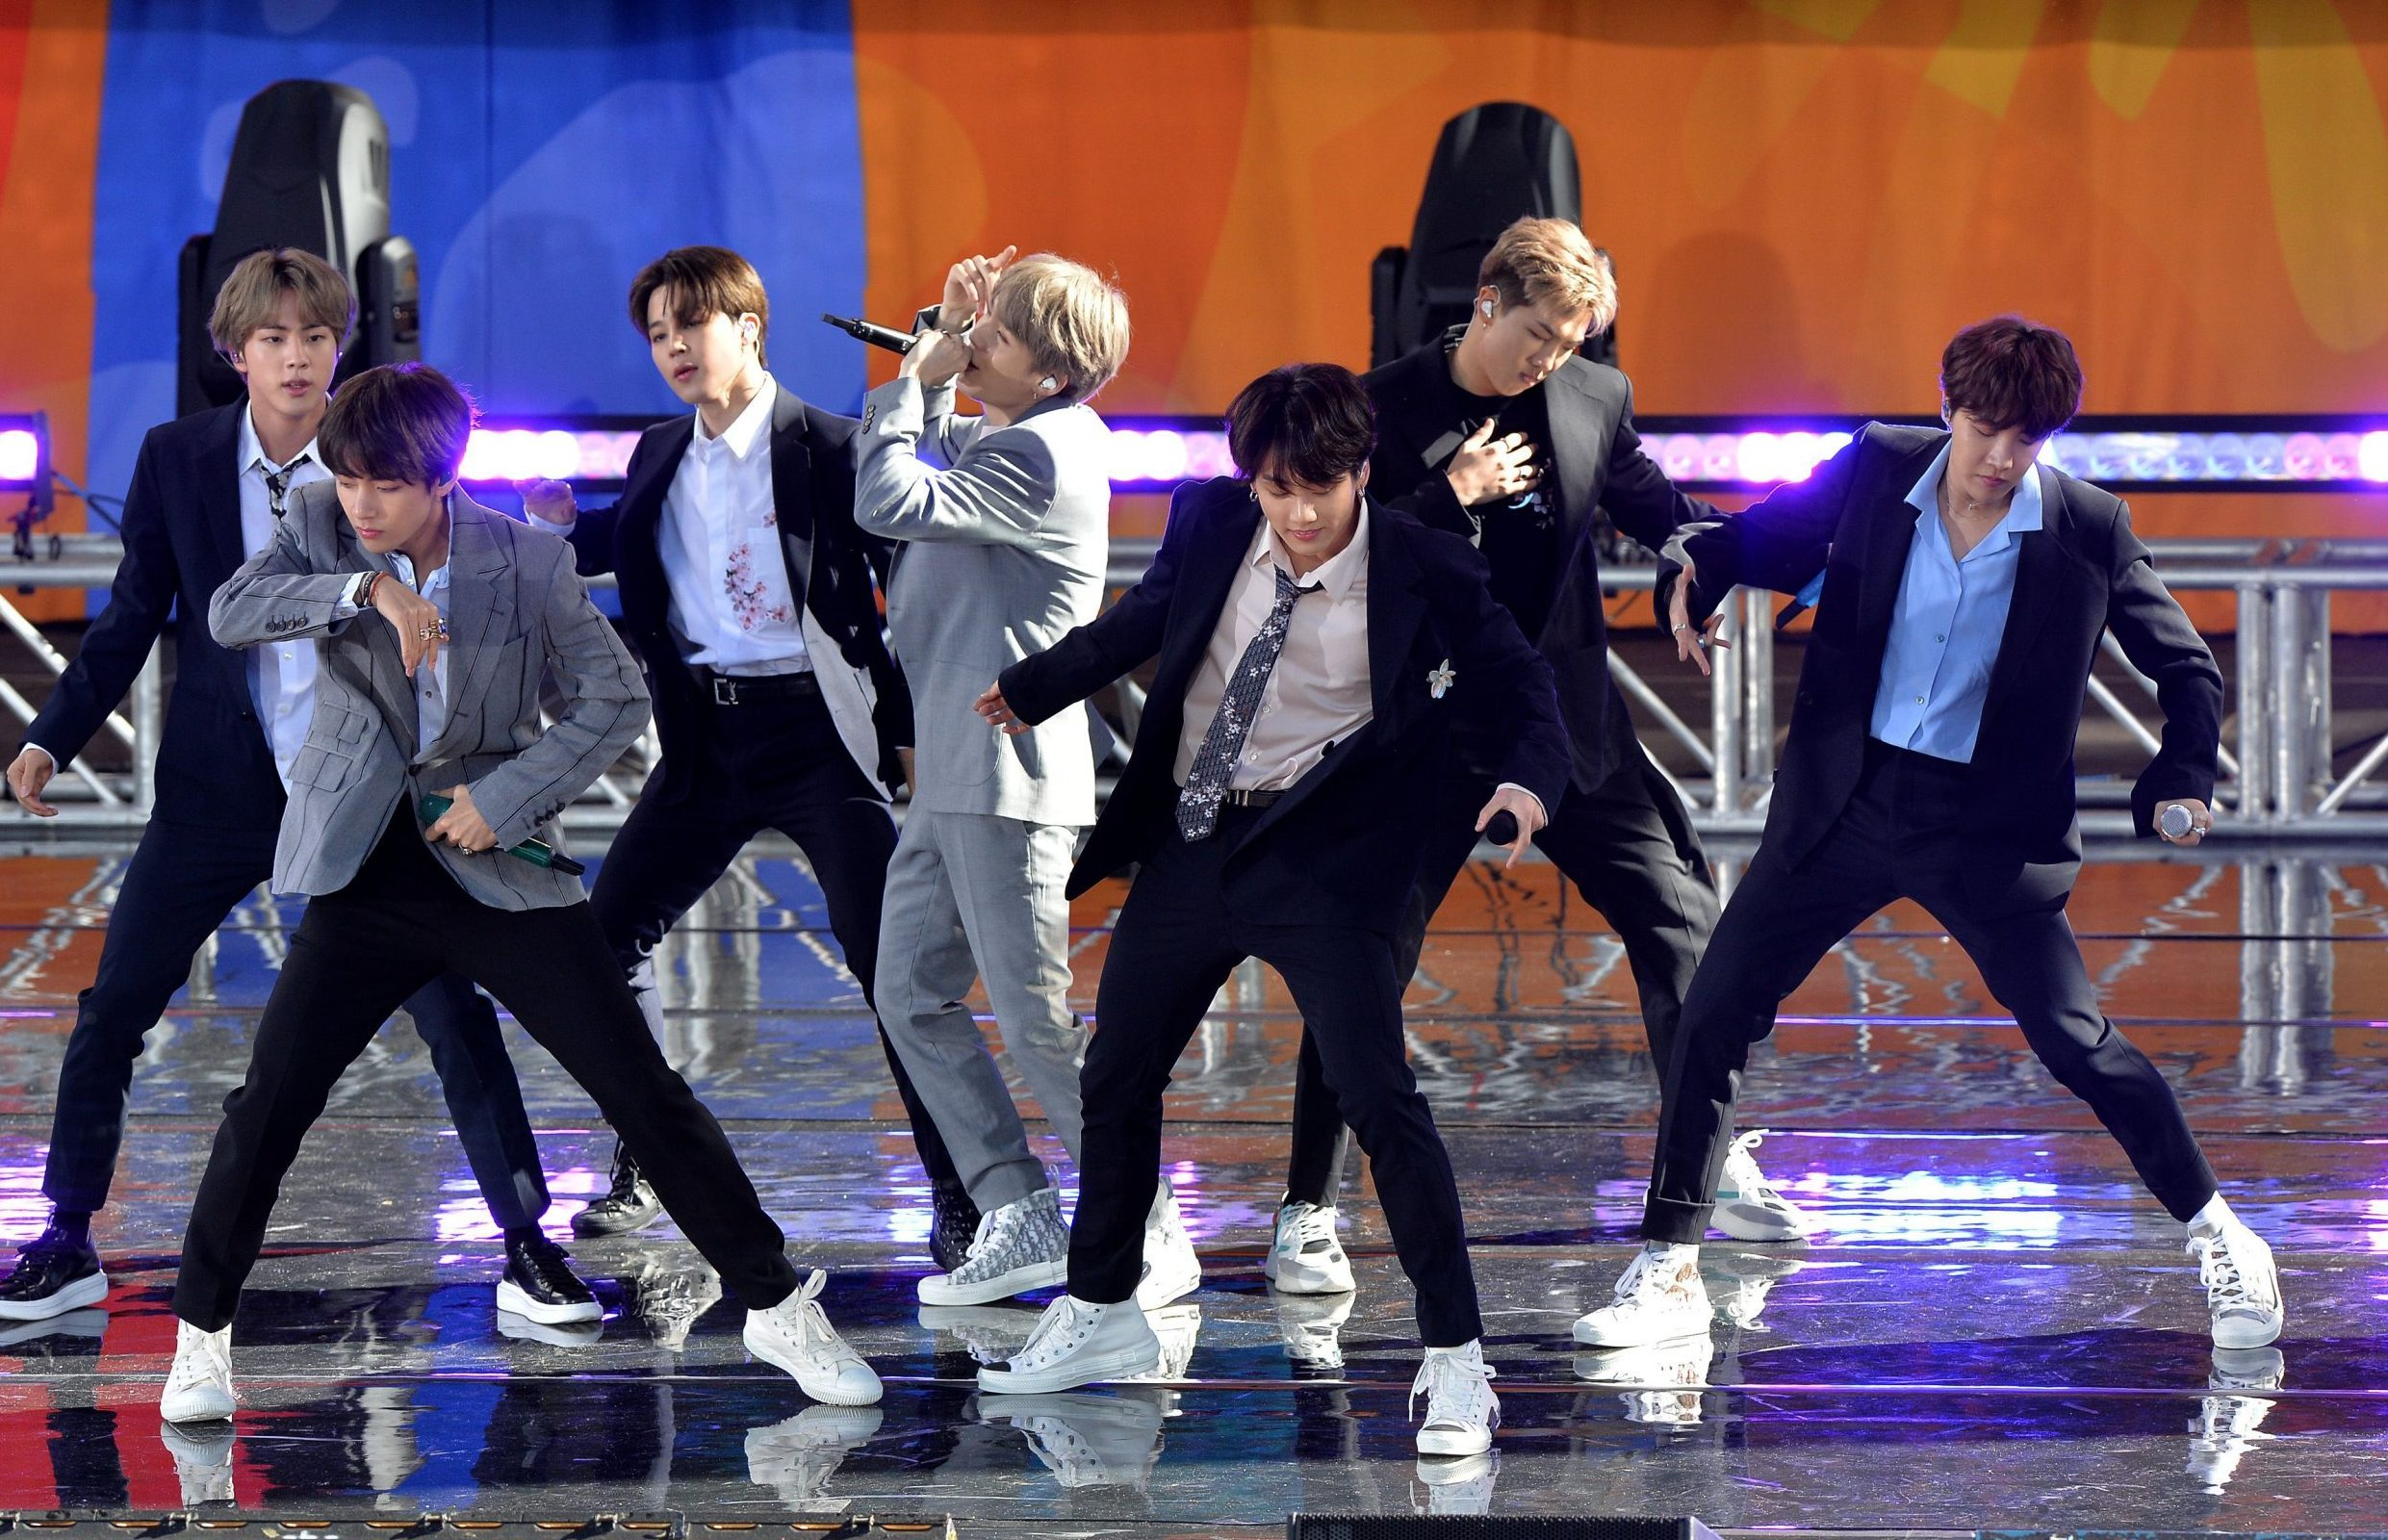 BTS goes from strength to strength as Boy With Luv spends 4th week on Billboard Hot 100